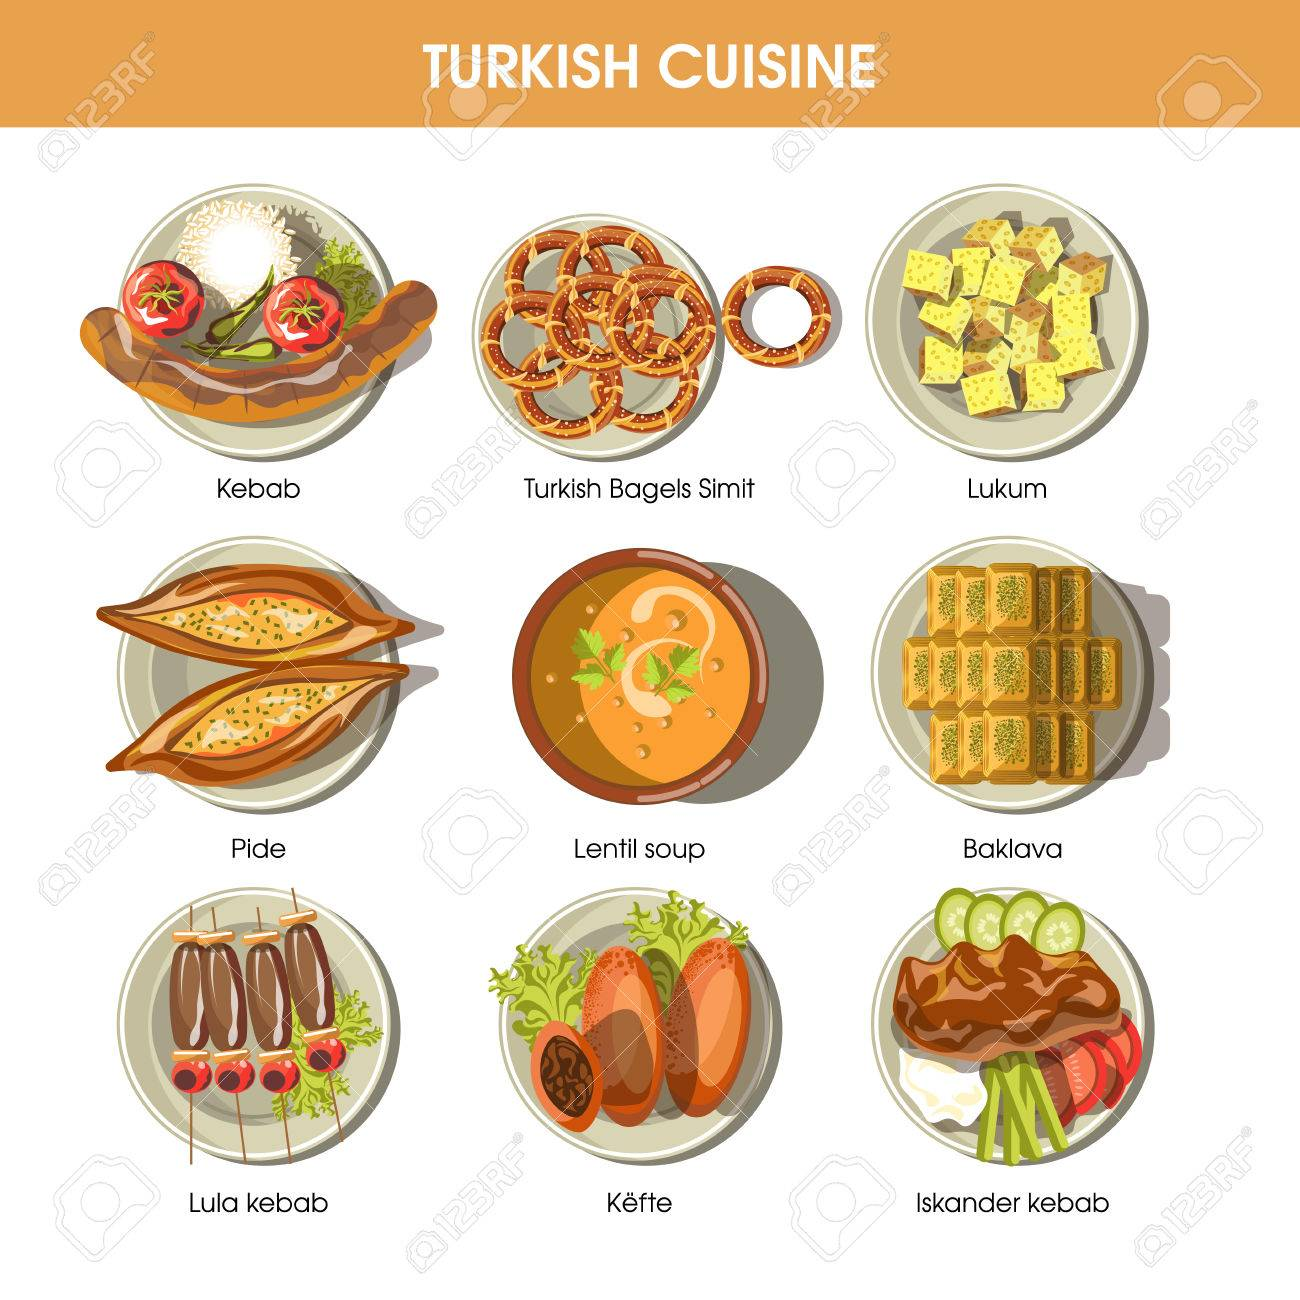 Turkish Food Cuisine Vector Icons For Restaurant Menu Royalty Free ...